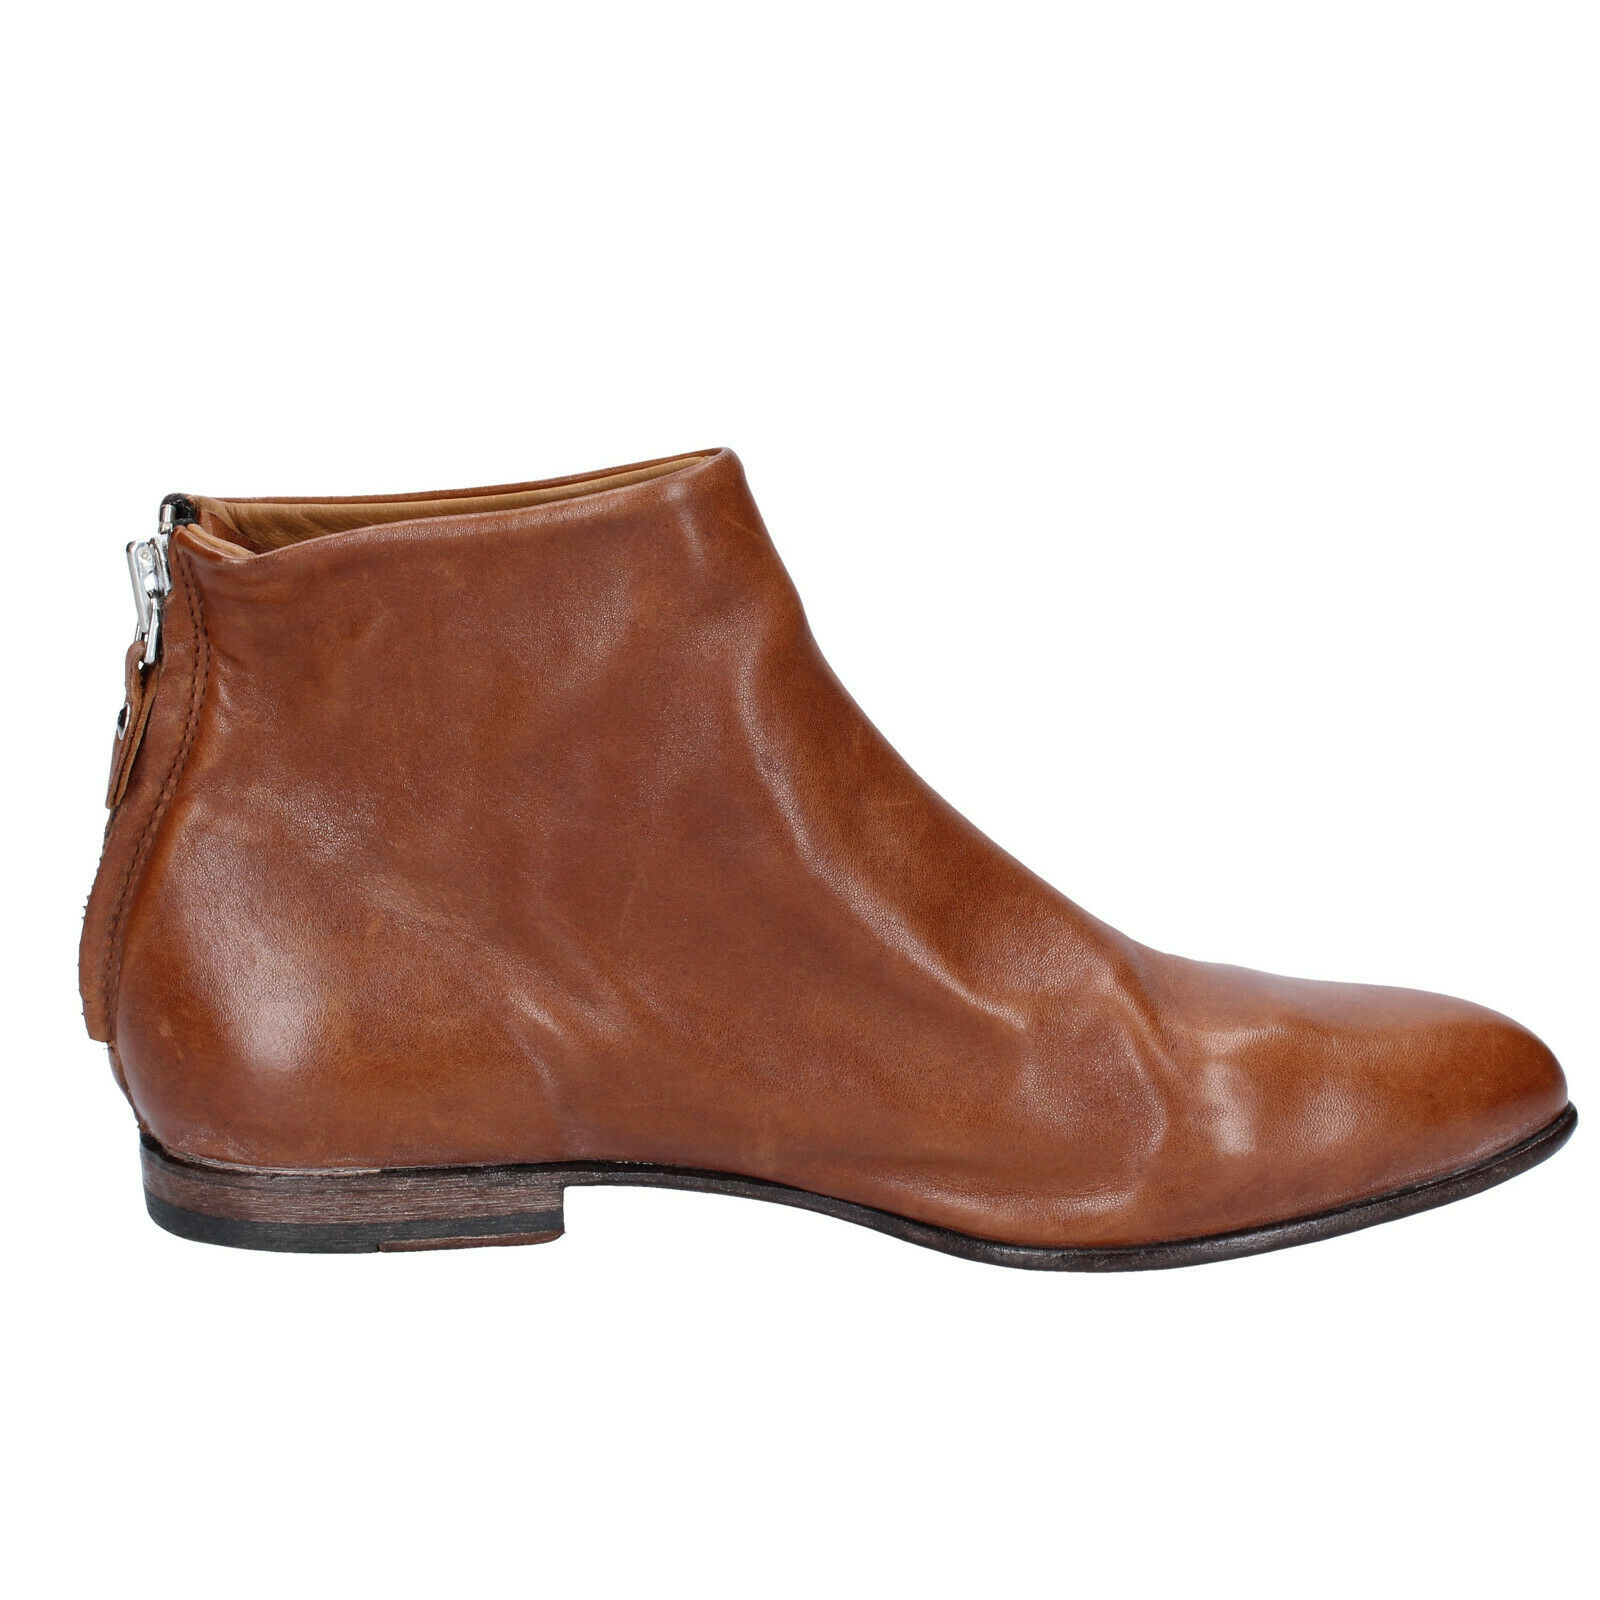 Women's shoes MOMA 4 (EU 37) ankle boots brown leather leather leather BS463-37 09bf5e